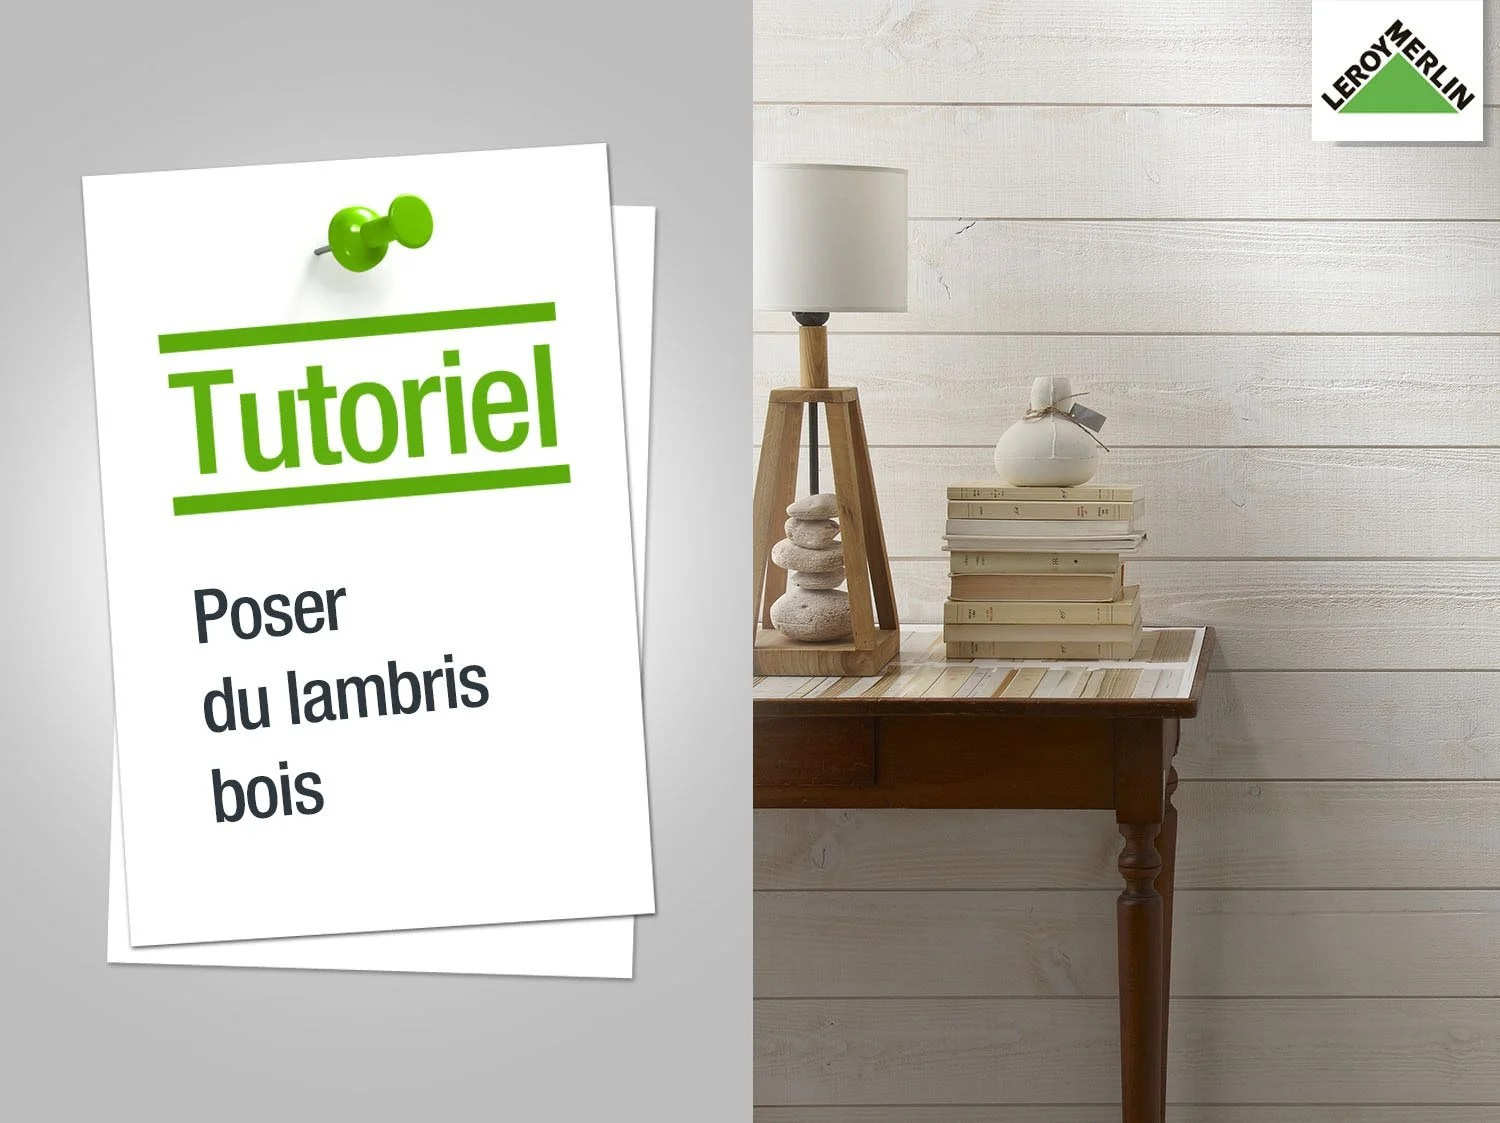 Pose Lambris Horizontal Leroy Merlin Lambris Premier Prix Prix De Pose De Lambris Co T Moyen Tarif De